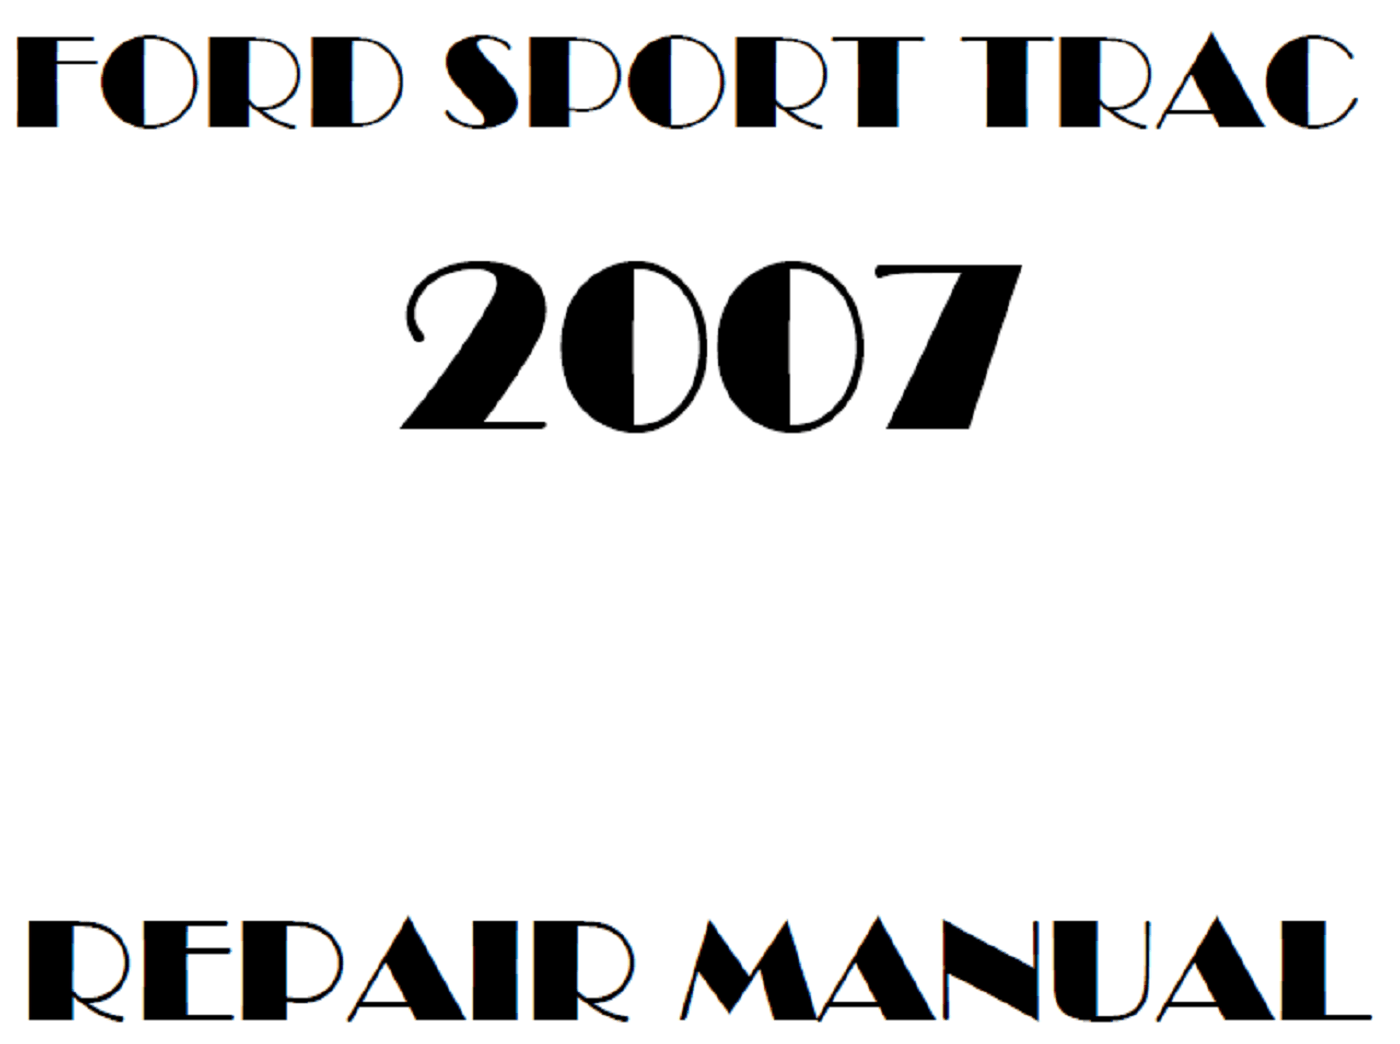 2007 Ford Explorer Sport Trac repair manual